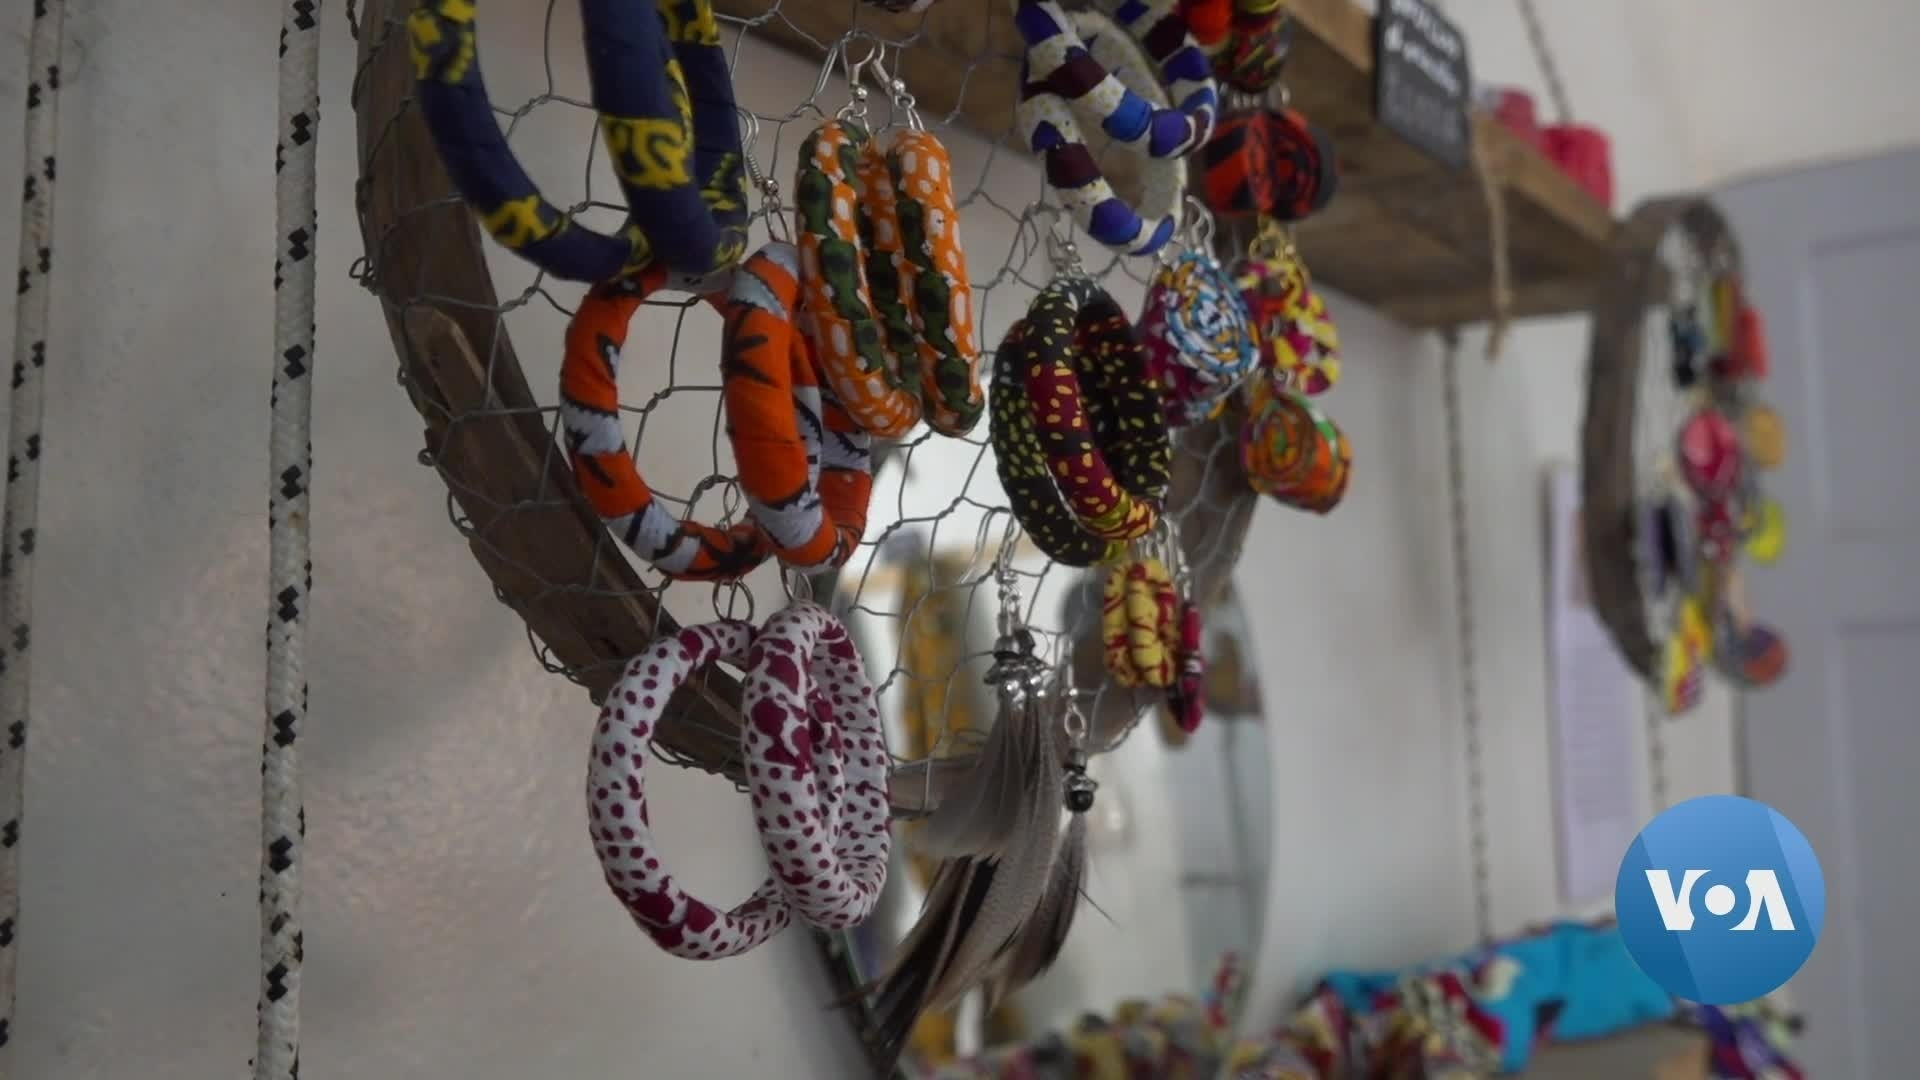 Crocheting With Plastic: Senegalese Atelier Mixes Recycling with Art